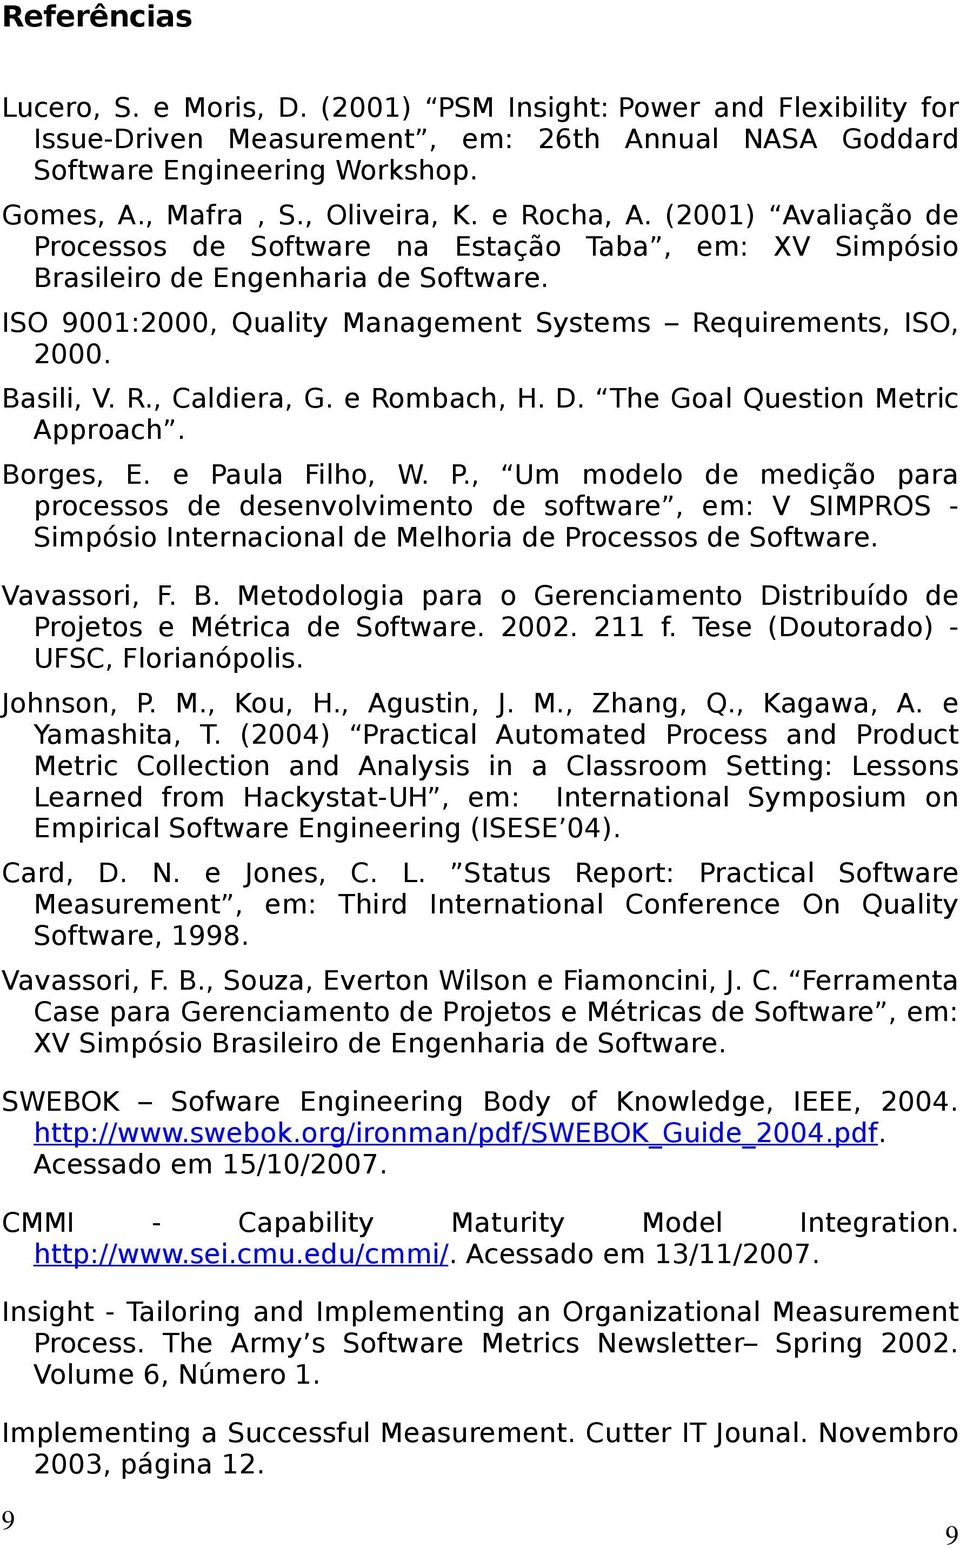 ISO 9001:2000, Quality Management Systems Requirements, ISO, 2000. Basili, V. R., Caldiera, G. e Rombach, H. D. The Goal Question Metric Approach. Borges, E. e Pa